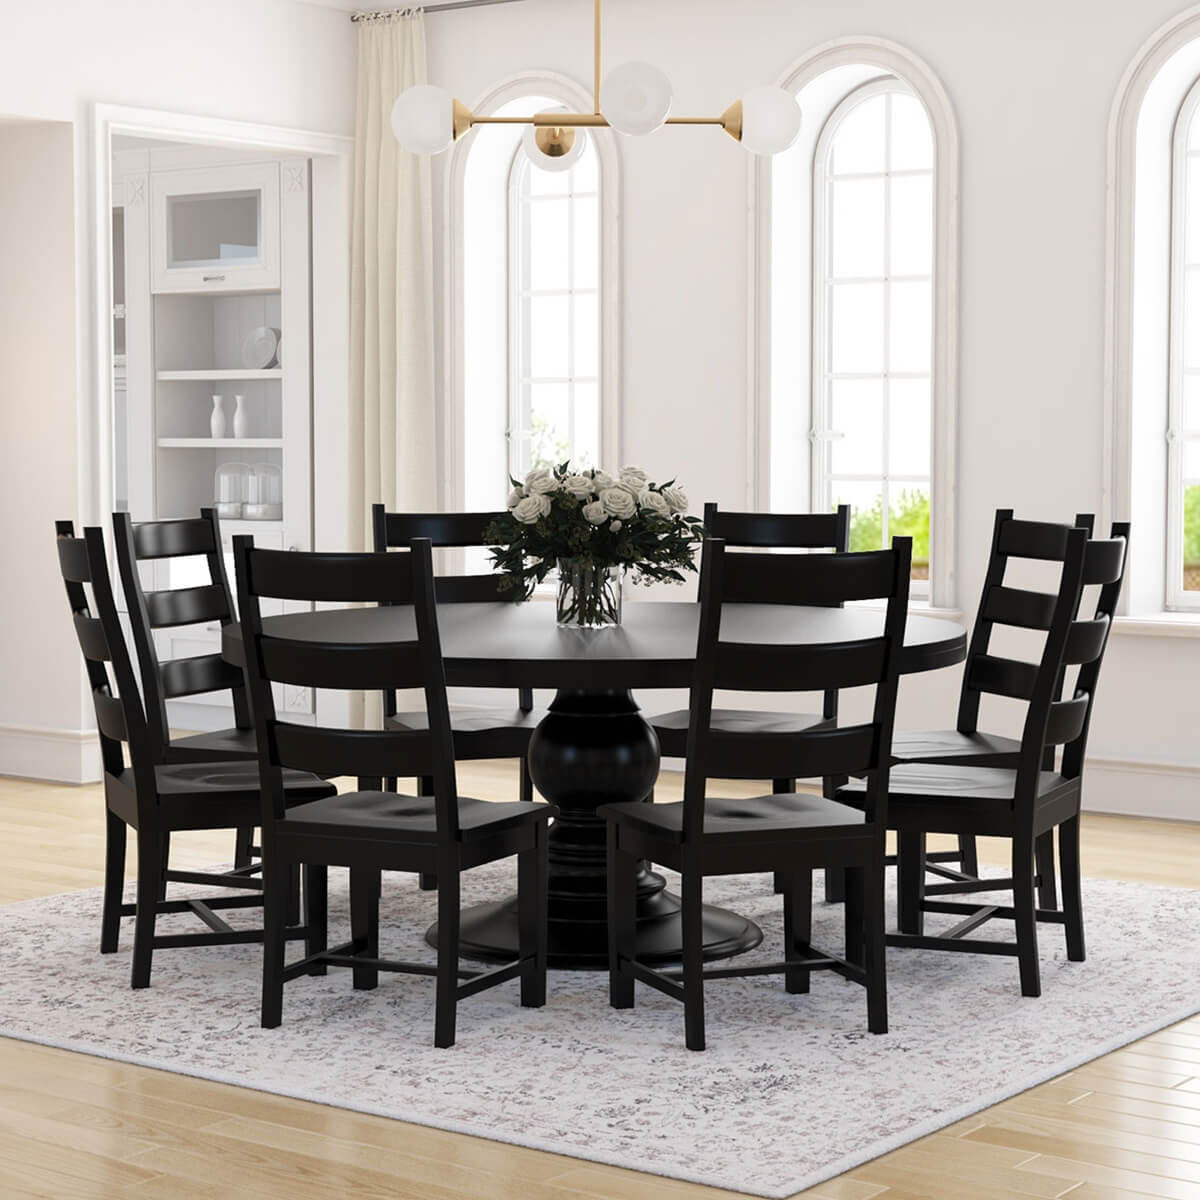 Nottingham rustic solid wood black round dining room table set for Round wood dining room table